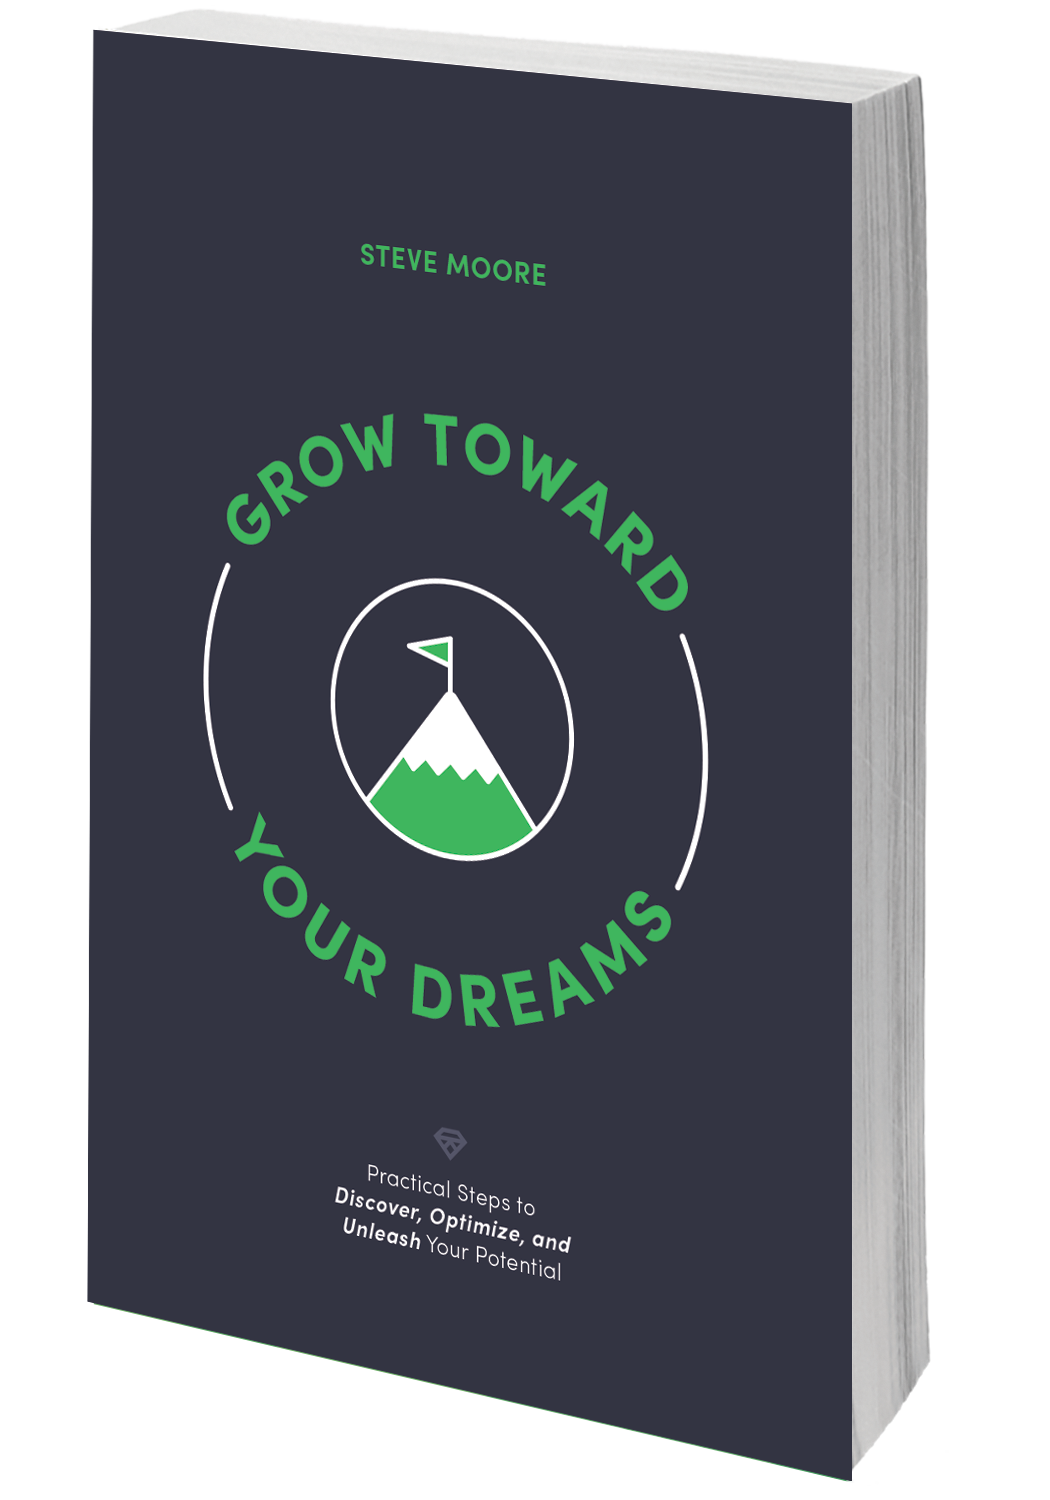 Grow-Toward-Your-Dreams-3D.png